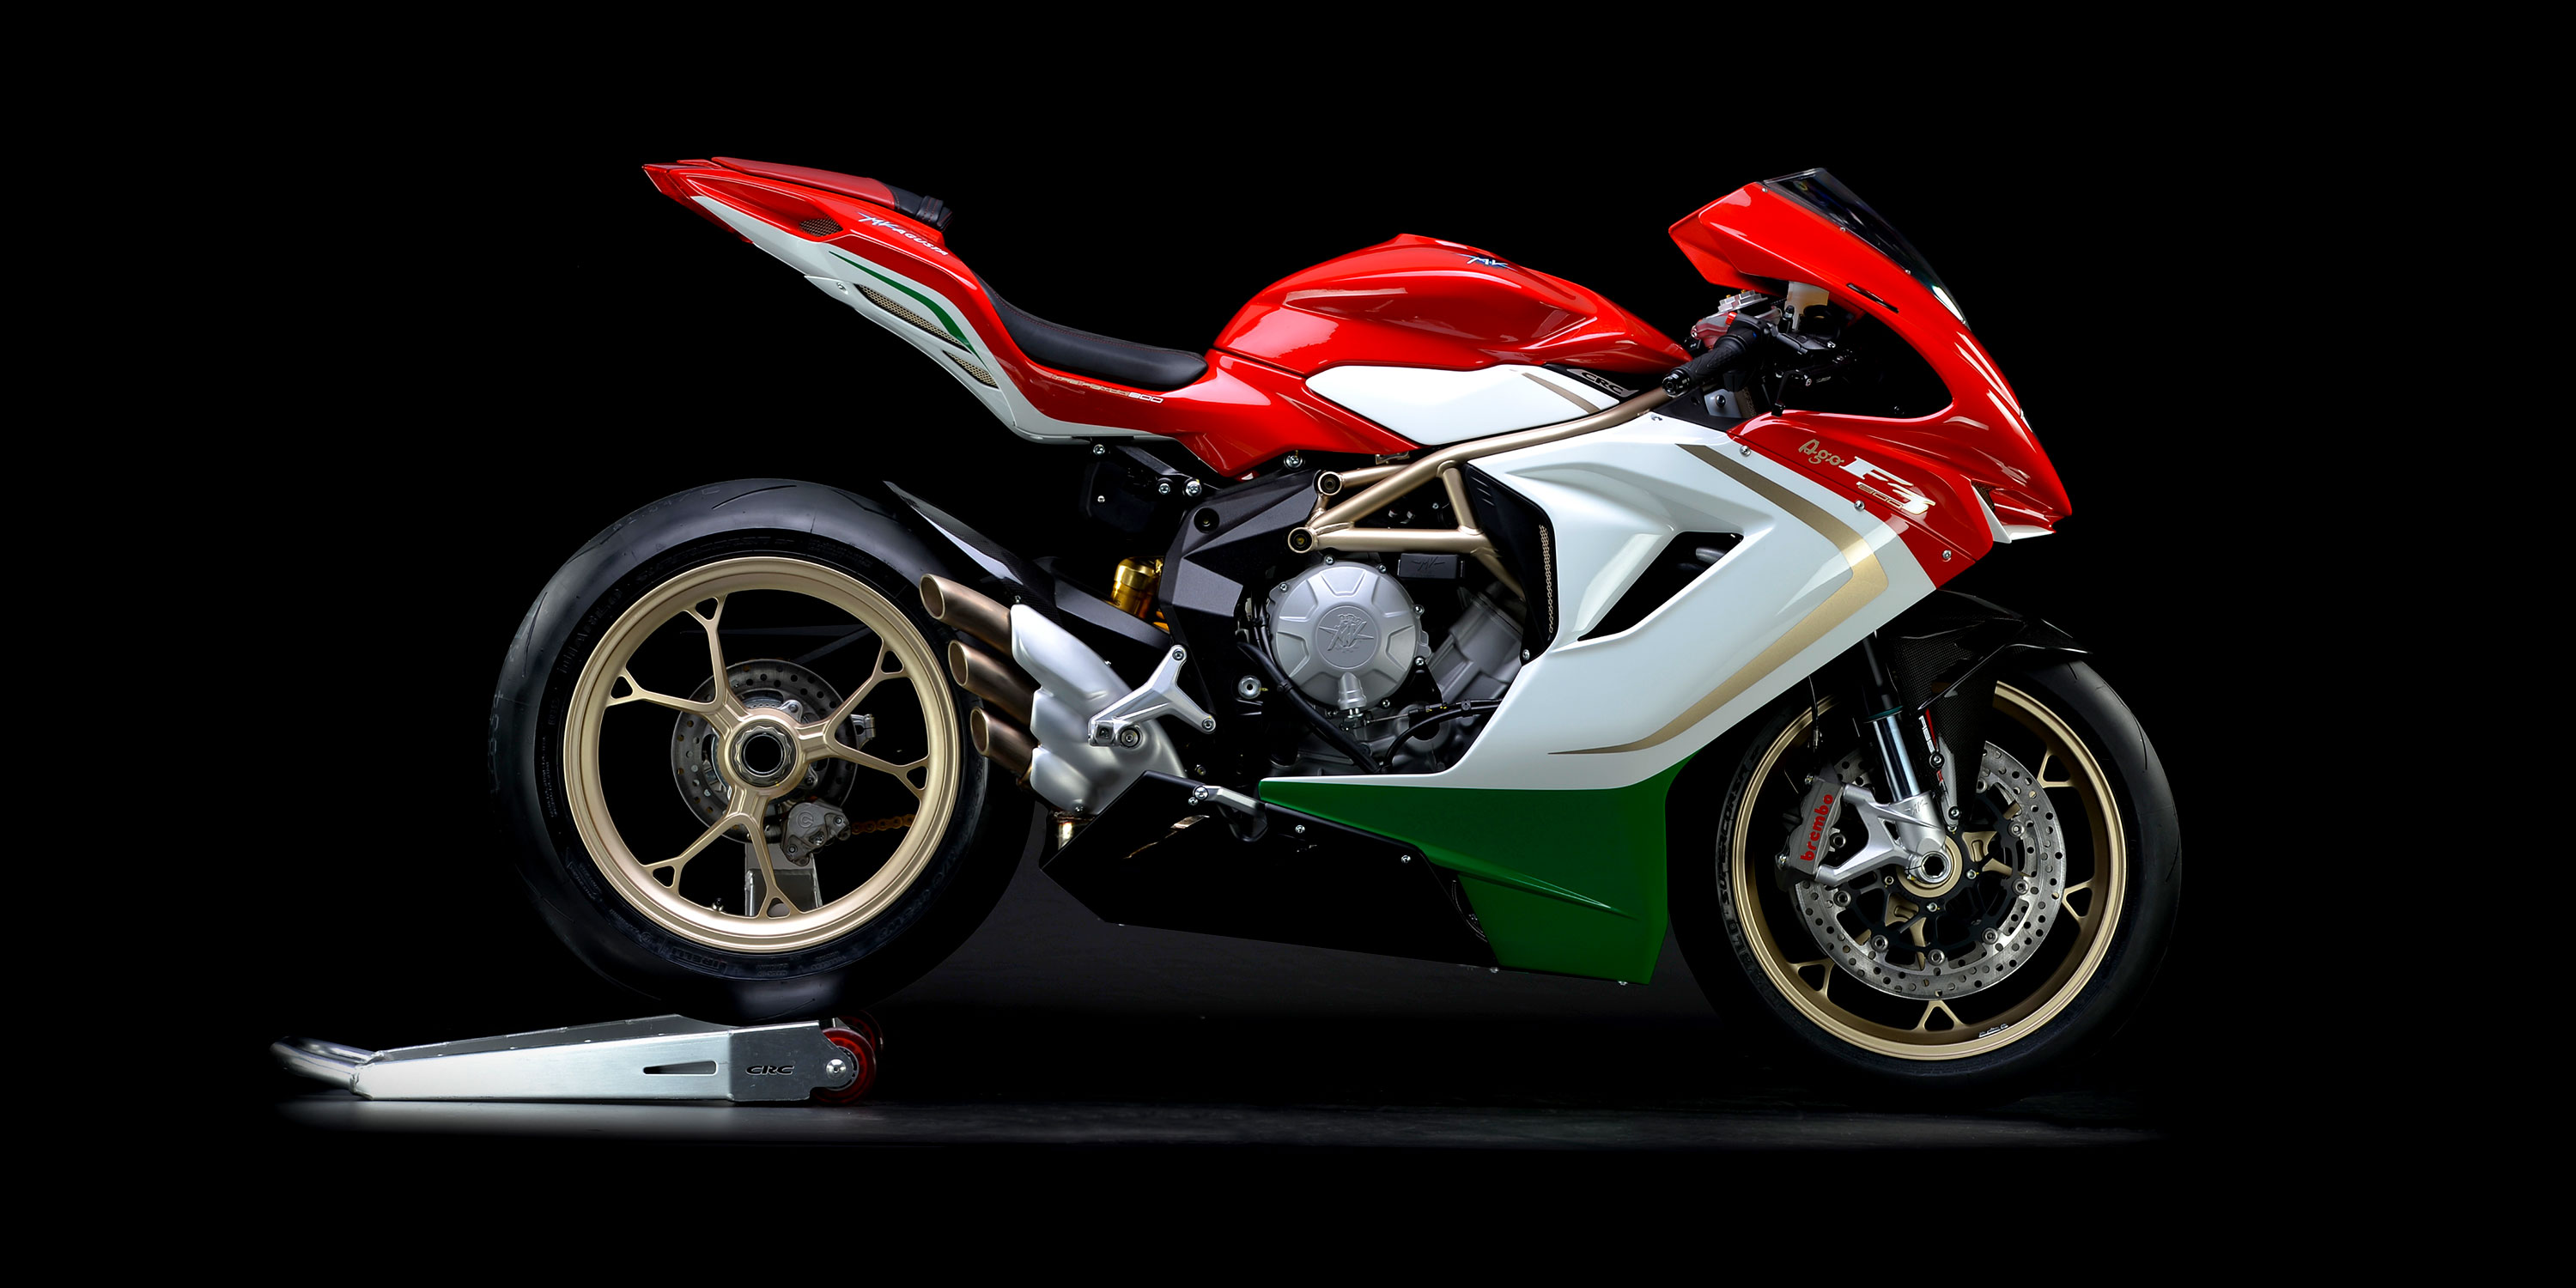 polaris rumored to be interested in mv agusta autoevolution. Black Bedroom Furniture Sets. Home Design Ideas